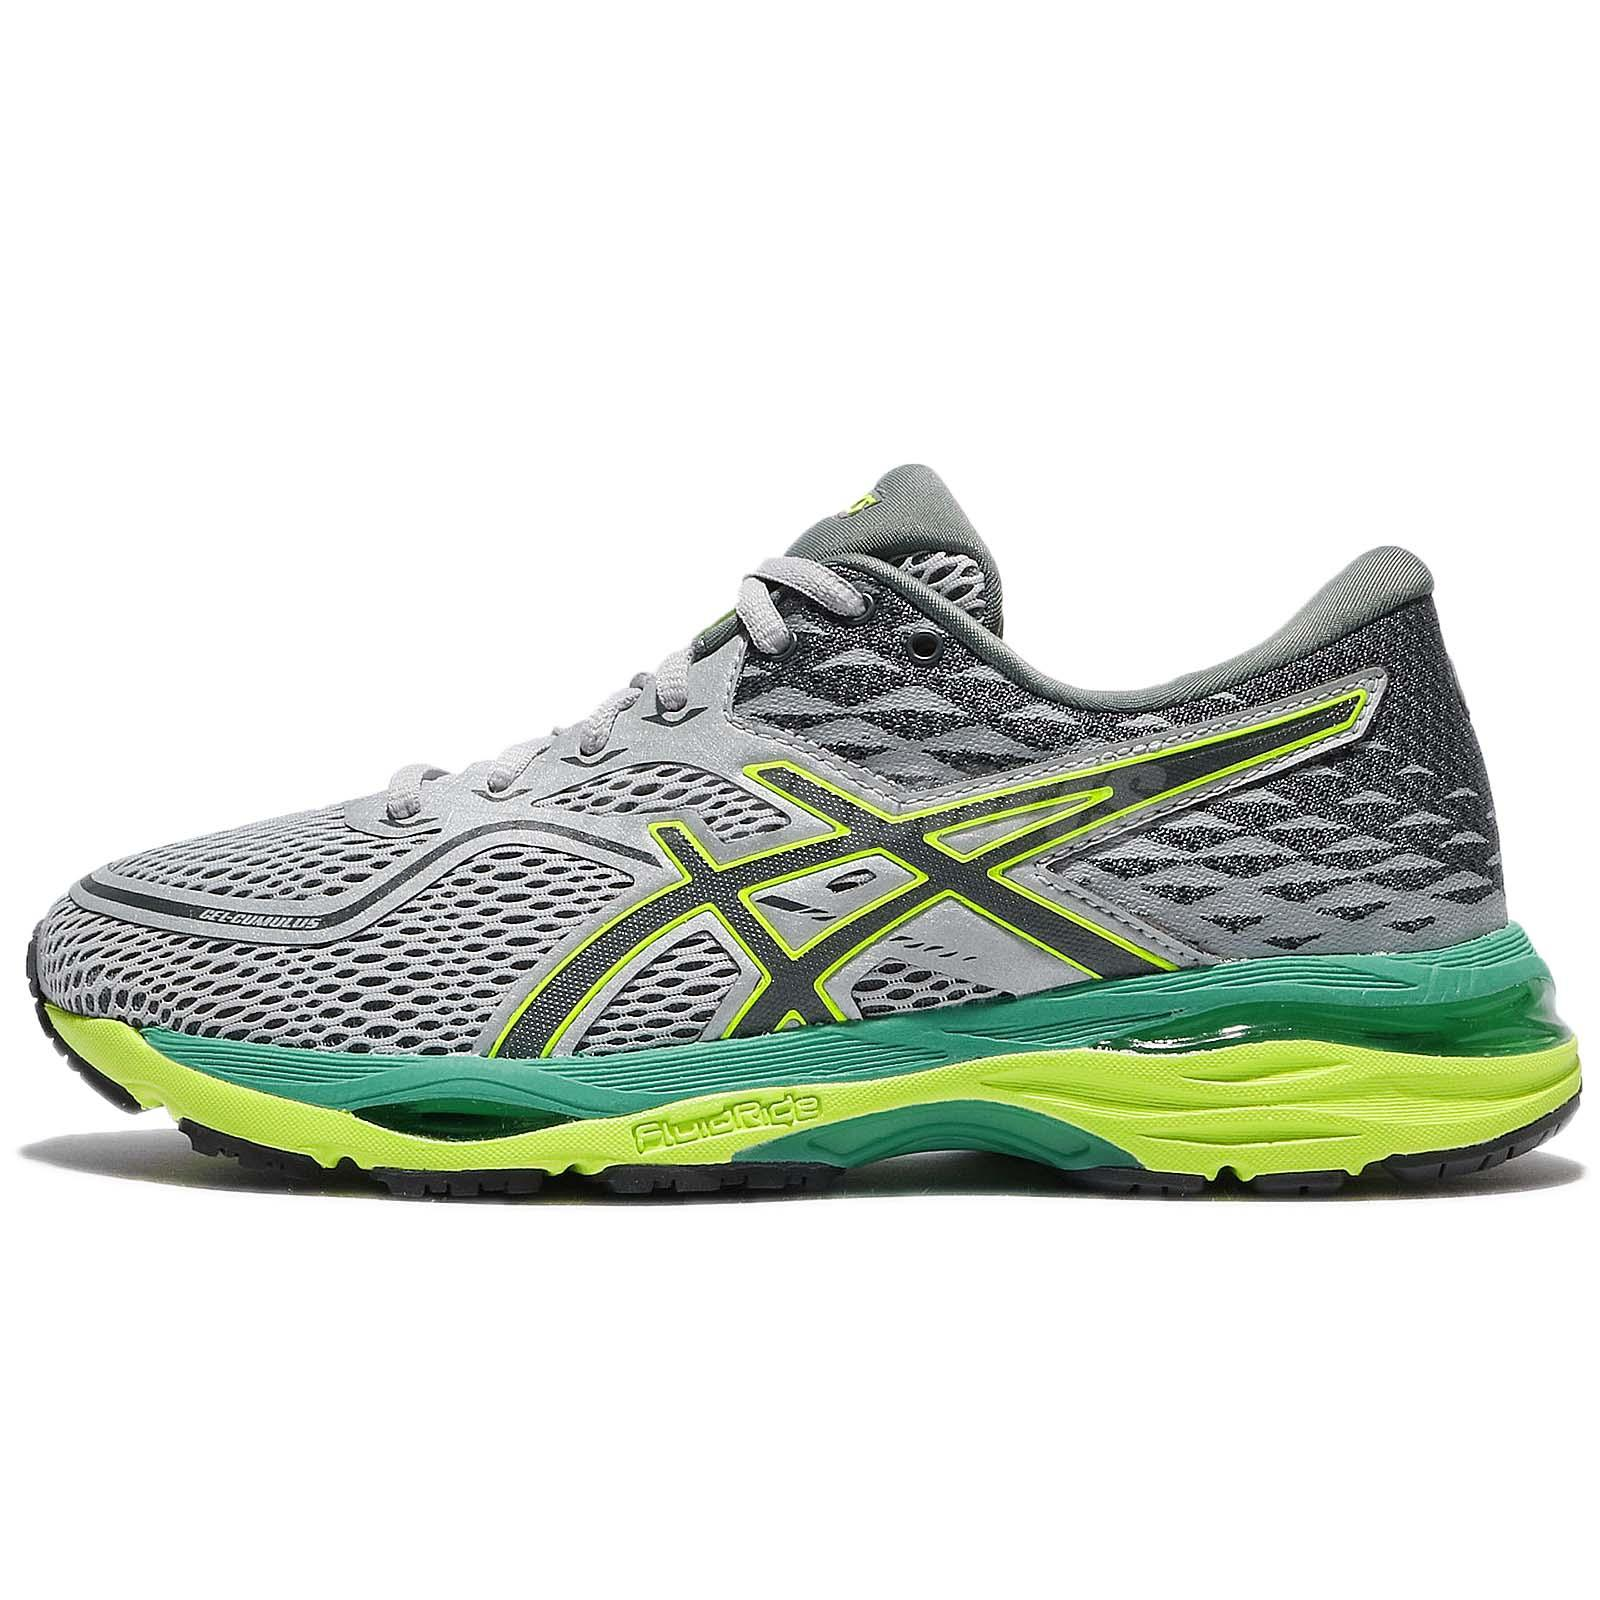 Asics Gel Cumulus 19 Mid Grey Green Yellow Women Running Shoe Sneaker T7B8N 9697